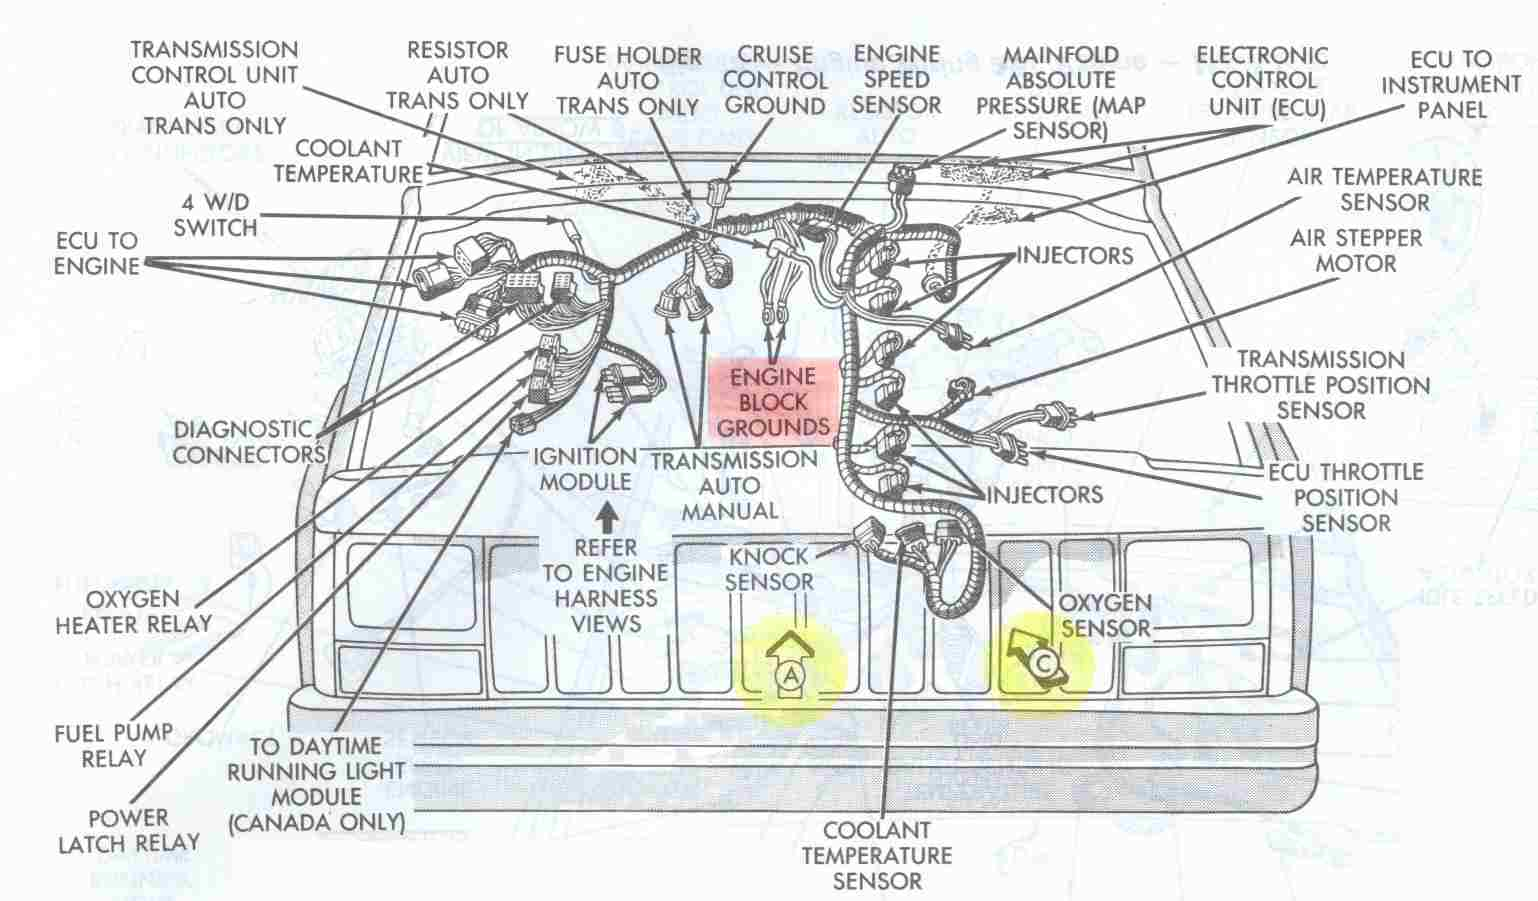 Electrical_Engine_Ground_Points_Overview jeep cherokee electrical diagnosing erratic behavior of engine 1996 jeep cherokee wiring diagram at mifinder.co